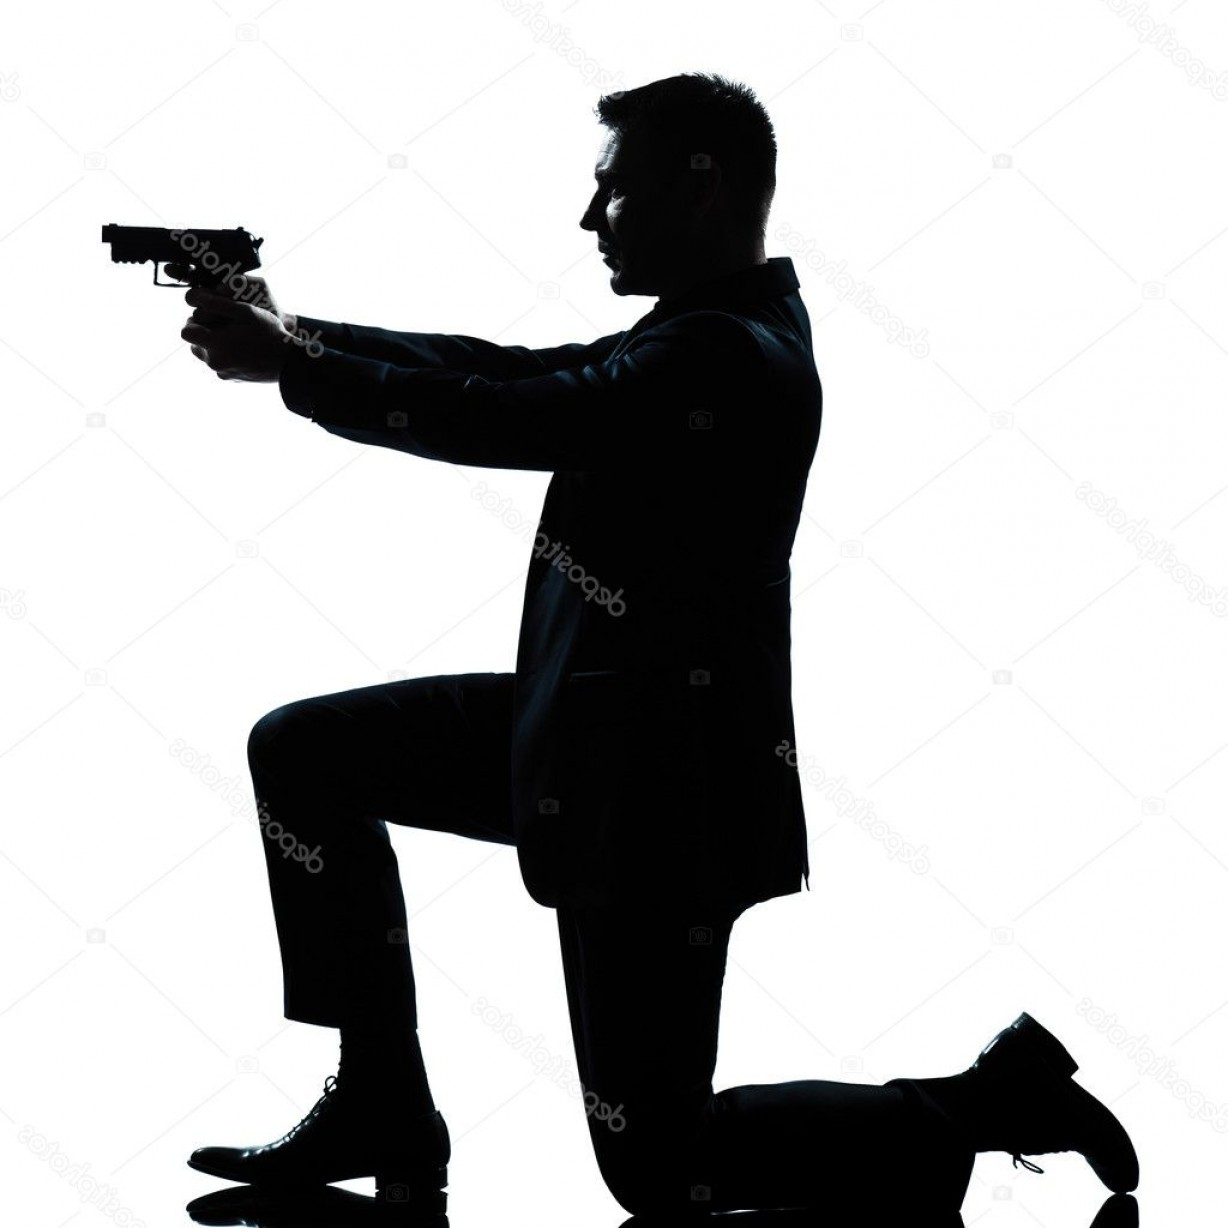 James Bond Silhouette Vector: Stock Photo Silhouette Man Kneeling Aiming Gun